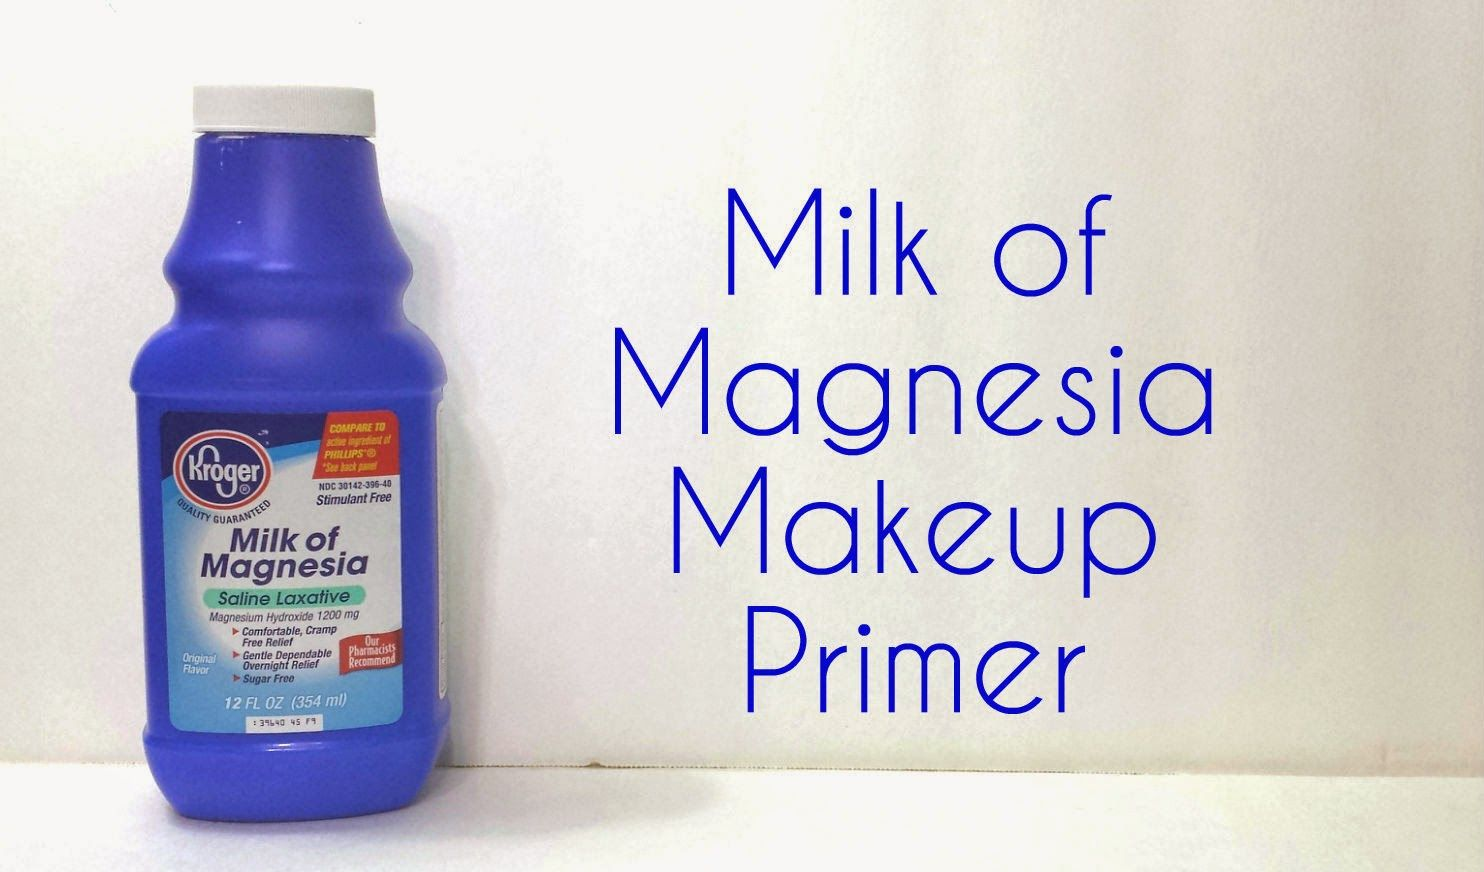 Milk of Magnesia Makeup Primer Does It Work? Makeup